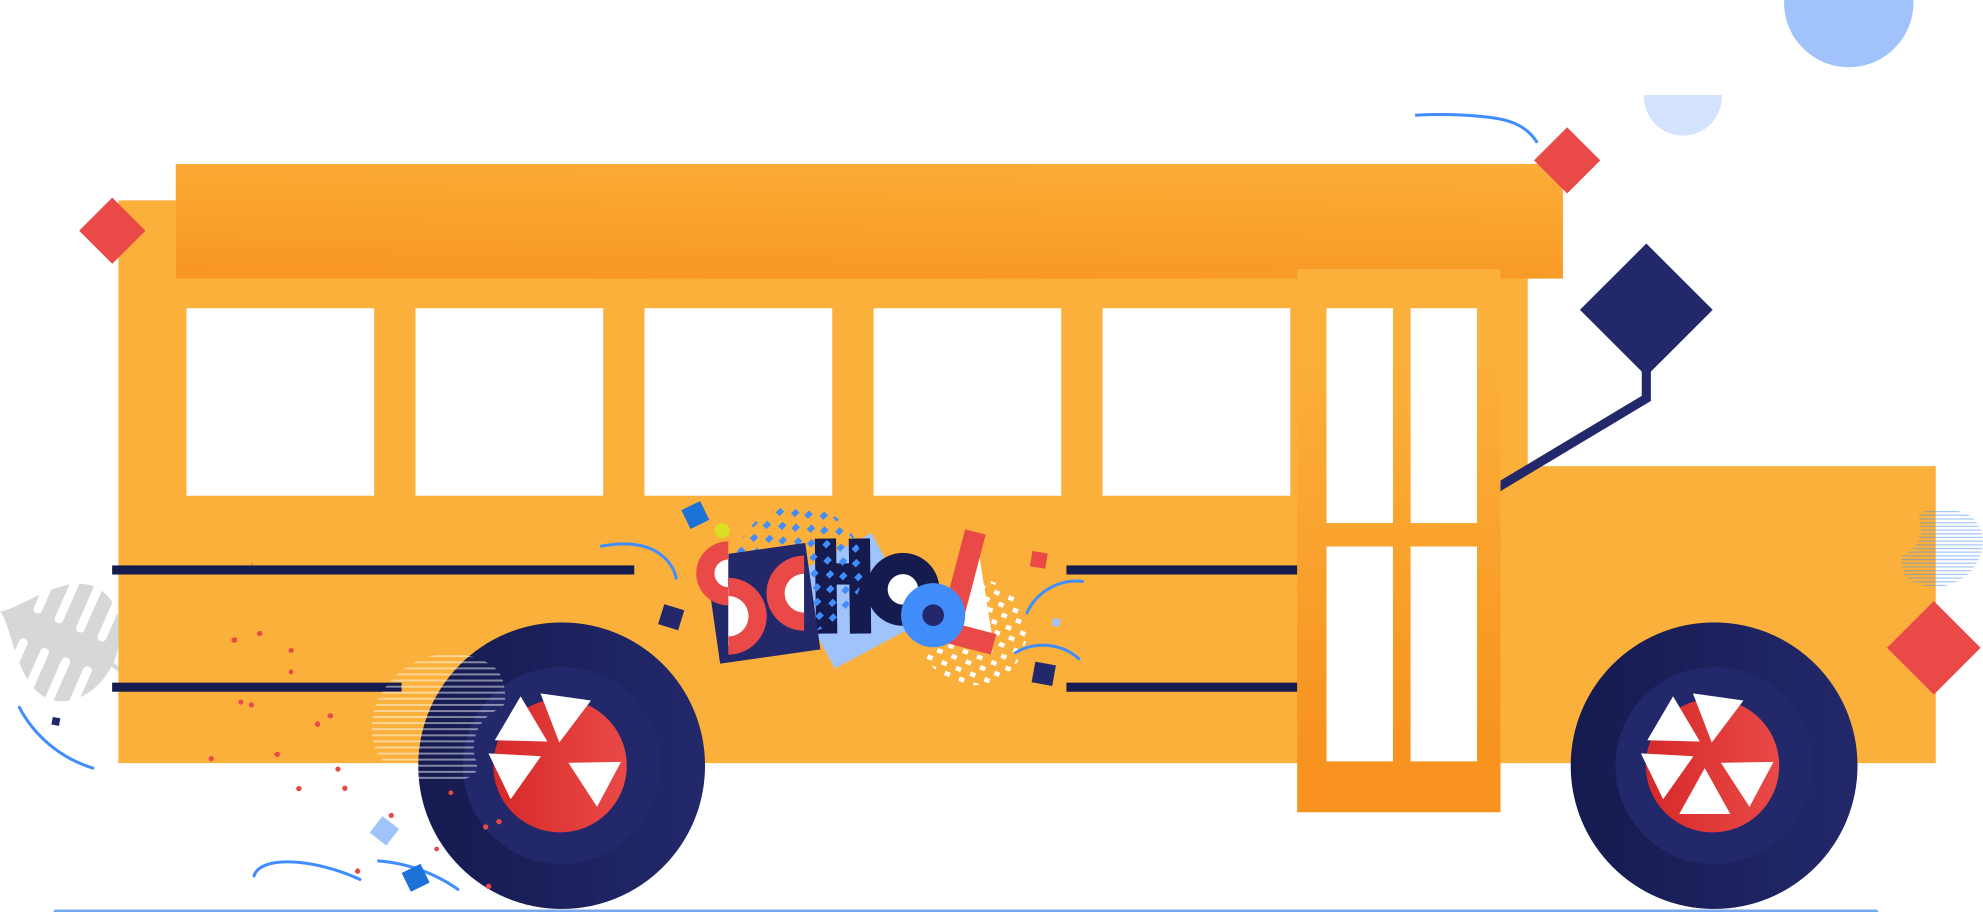 style school bus Vector images in PNG and SVG | Icons8 Illustrations